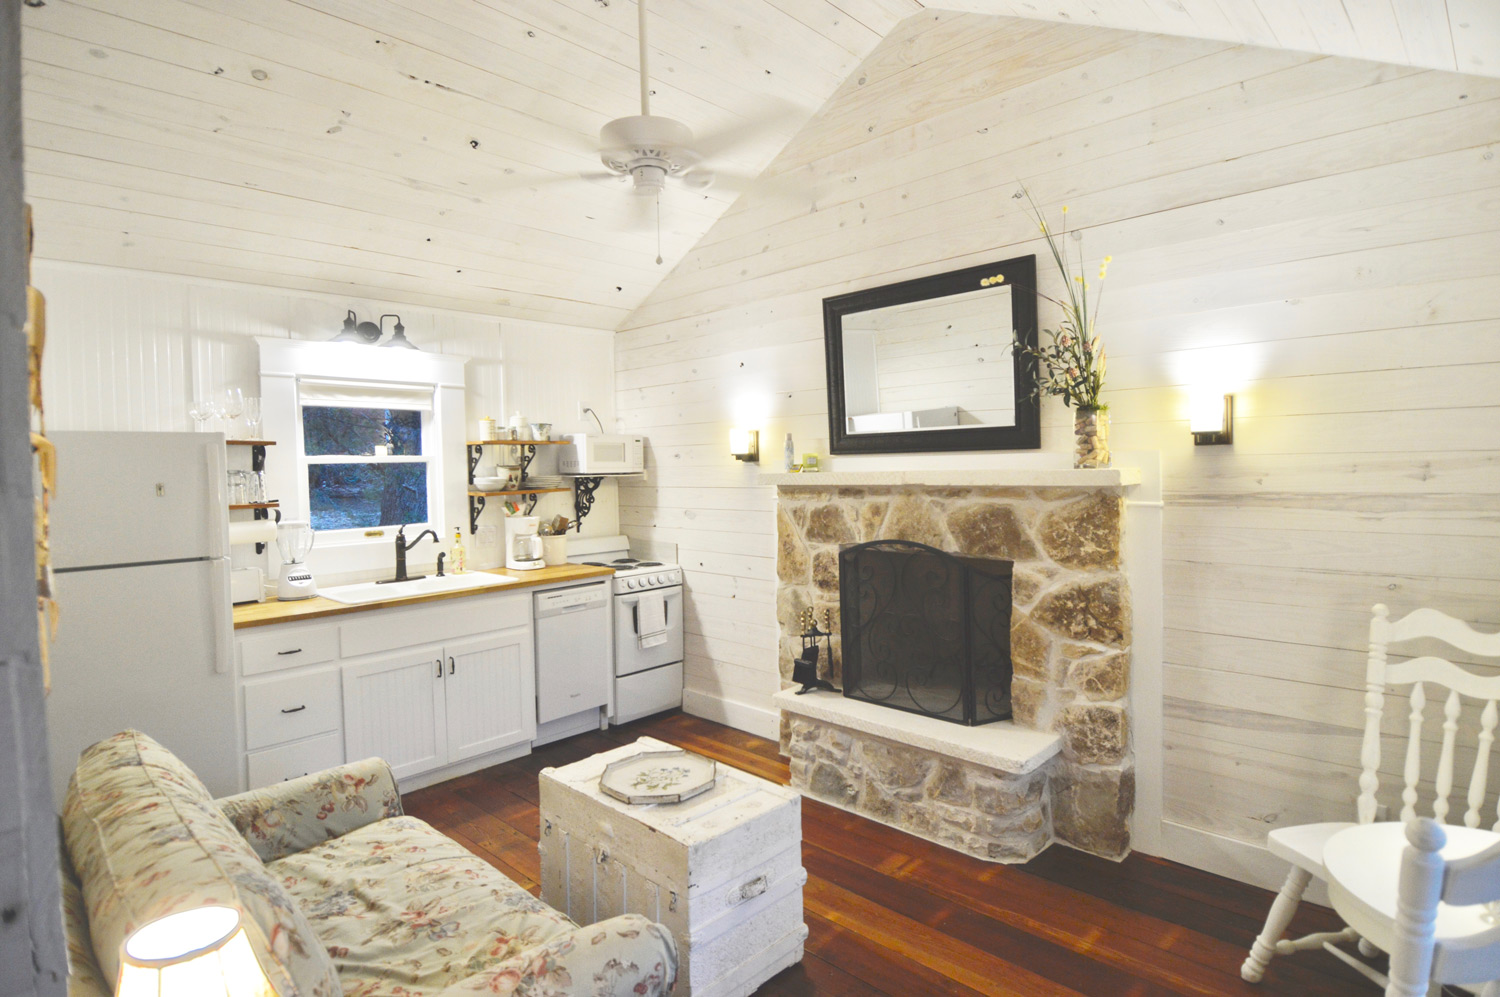 texas visit us exterior cottages prefer cottage creek travelers cypress stay with reasons wimberley